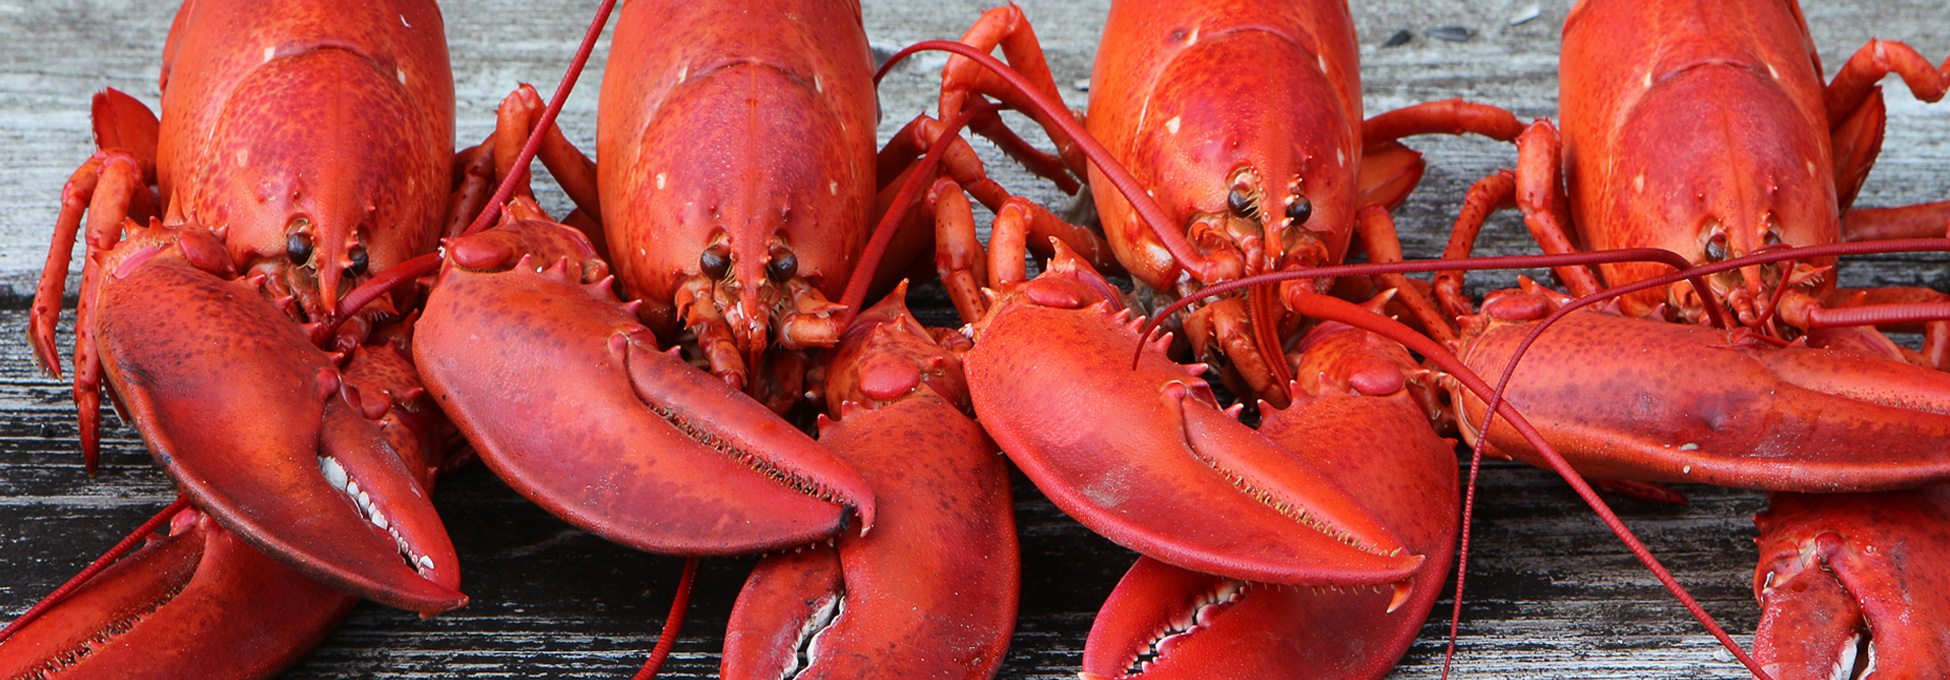 trigs-homepg-banner-lobster-fest-fathers-day.jpg